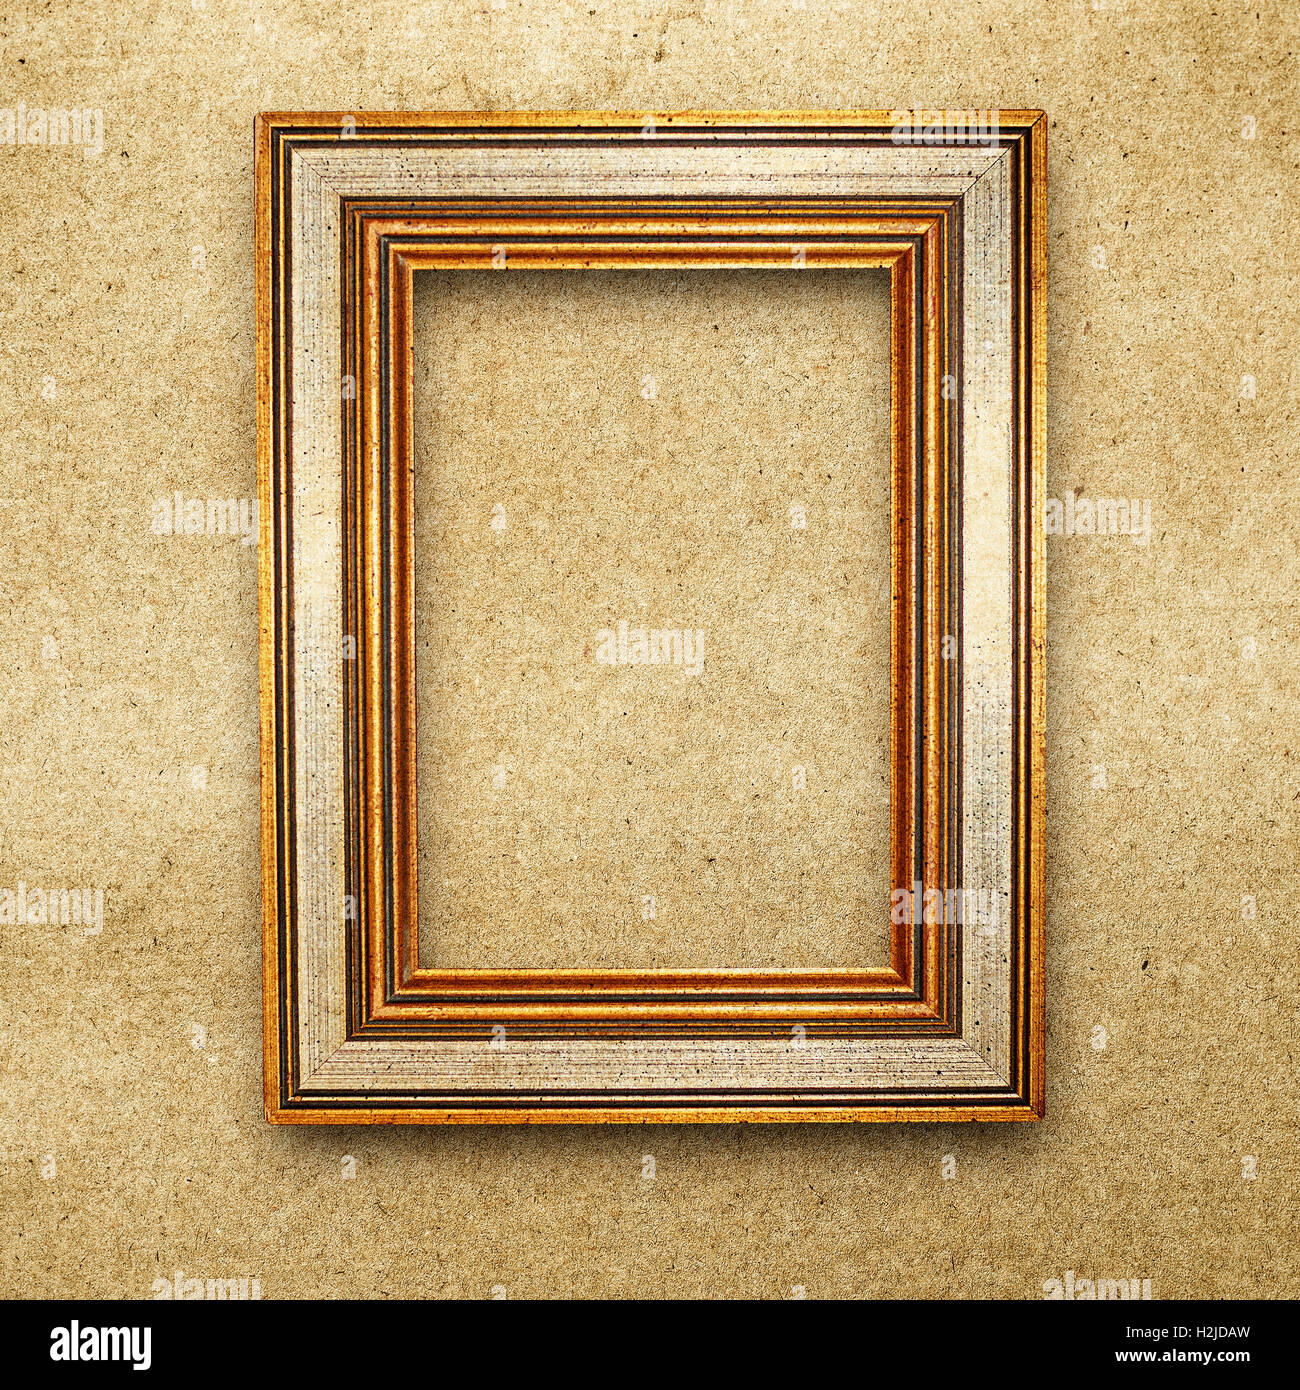 vintage wood frame background on grunge paper texture Stock Photo